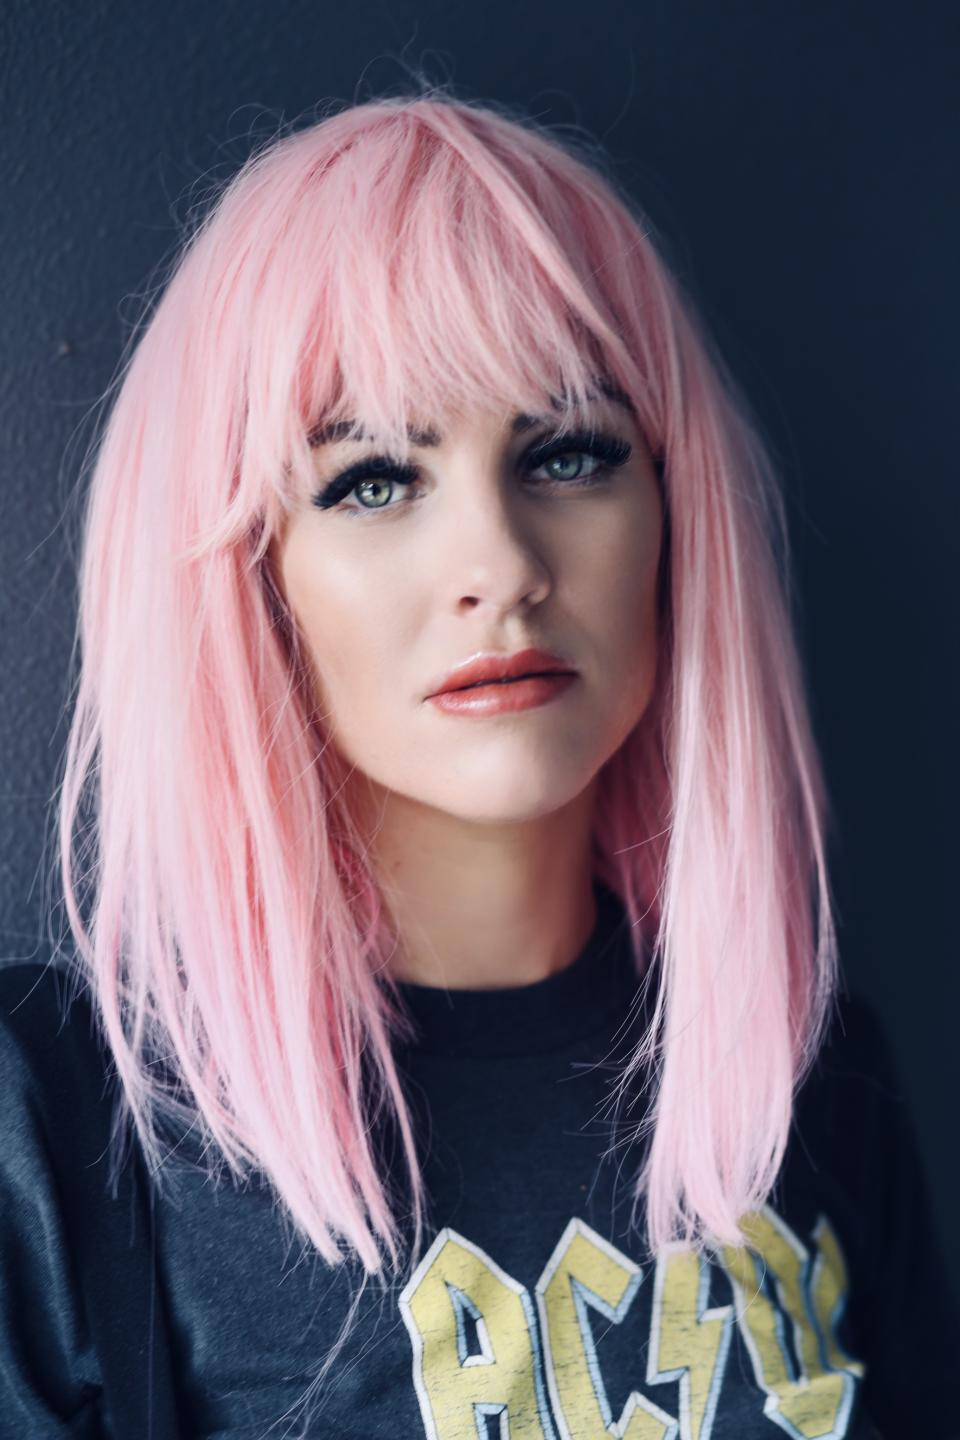 Booka Nile wearing a pink wig, an AC/DC t-shirt and black short dungarees